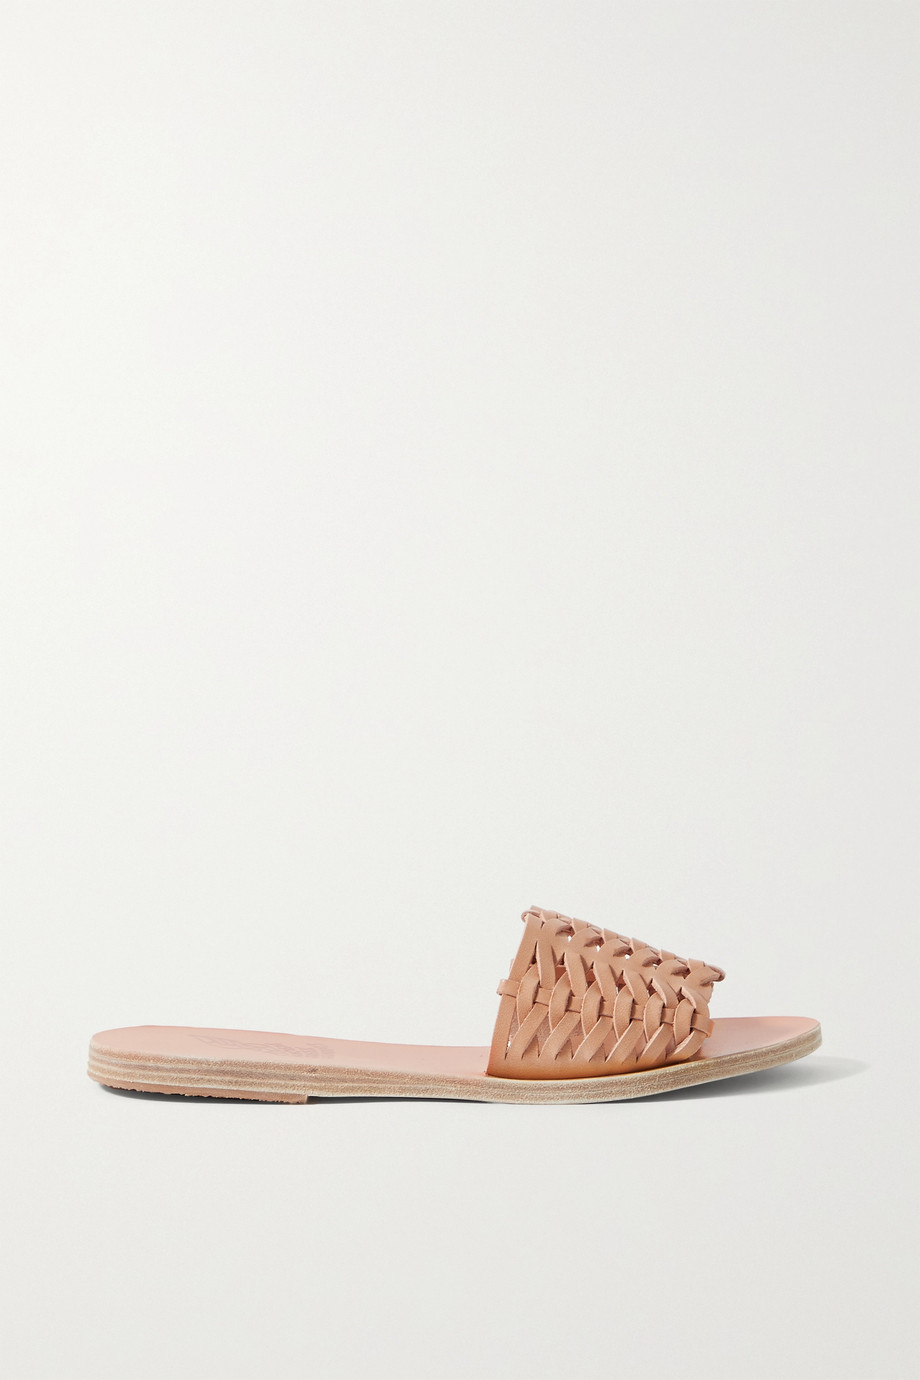 ANCIENT GREEK SANDALS Taygete woven leather slides